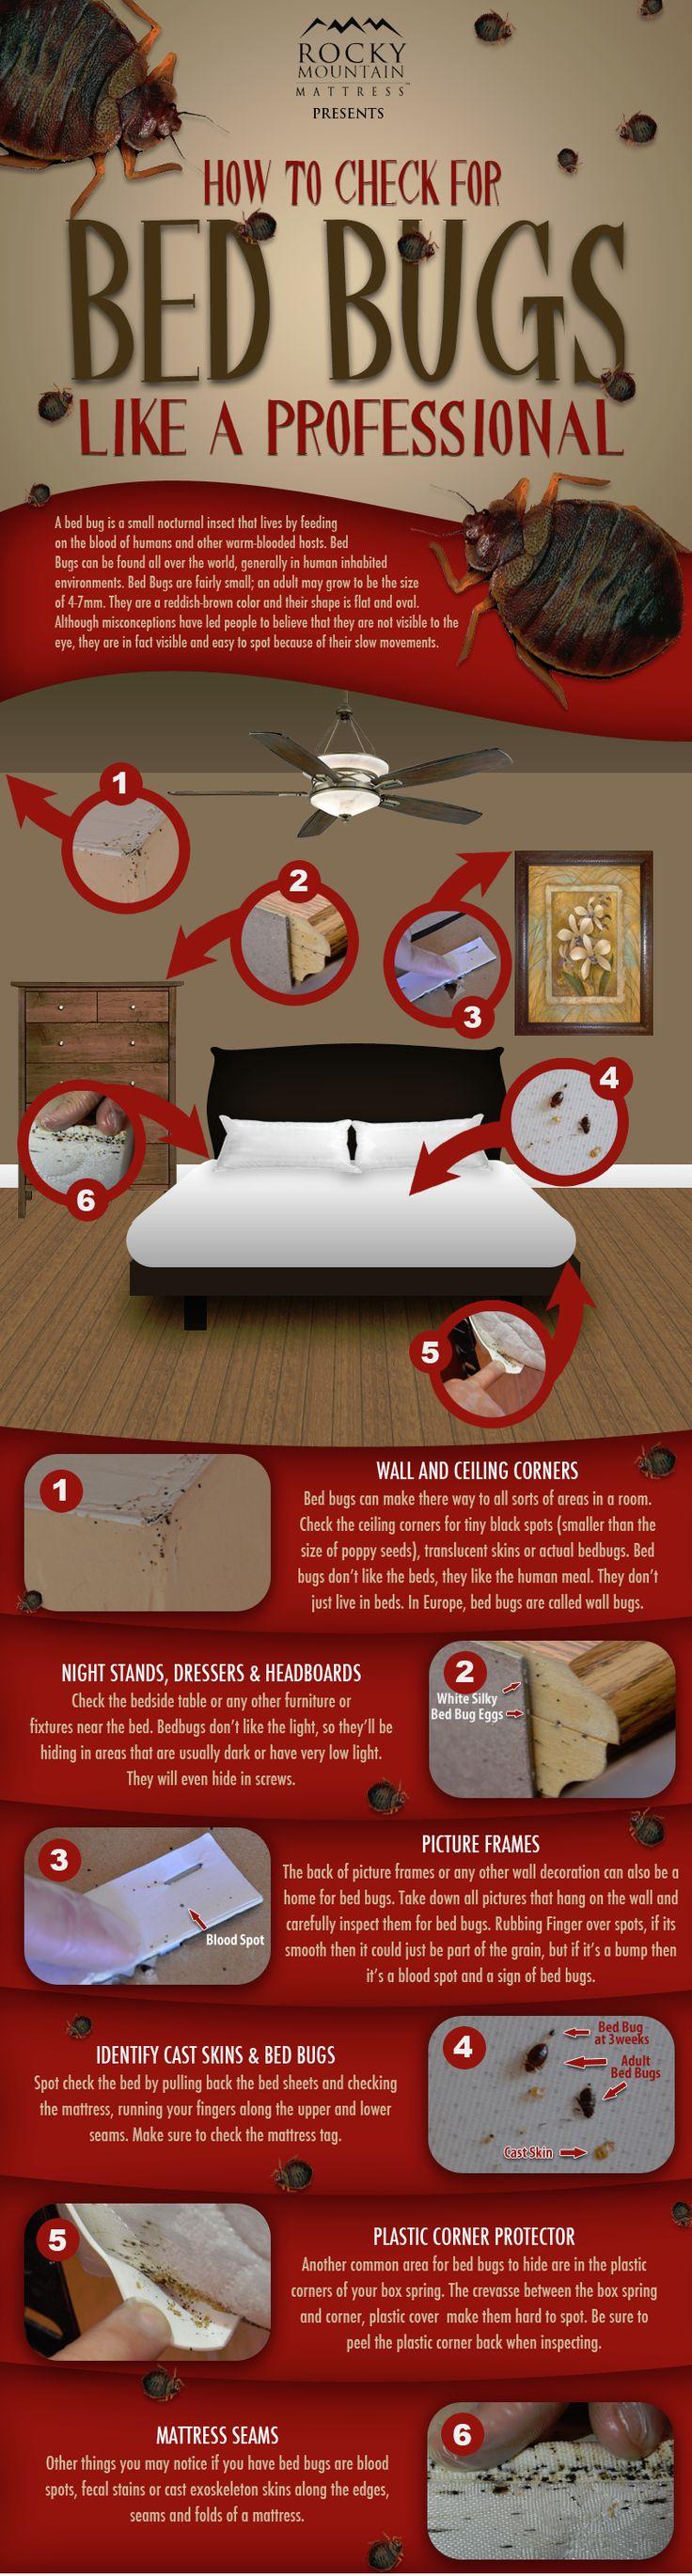 How to check for bed bugs like a boss. Seriously, everyone should look at this.